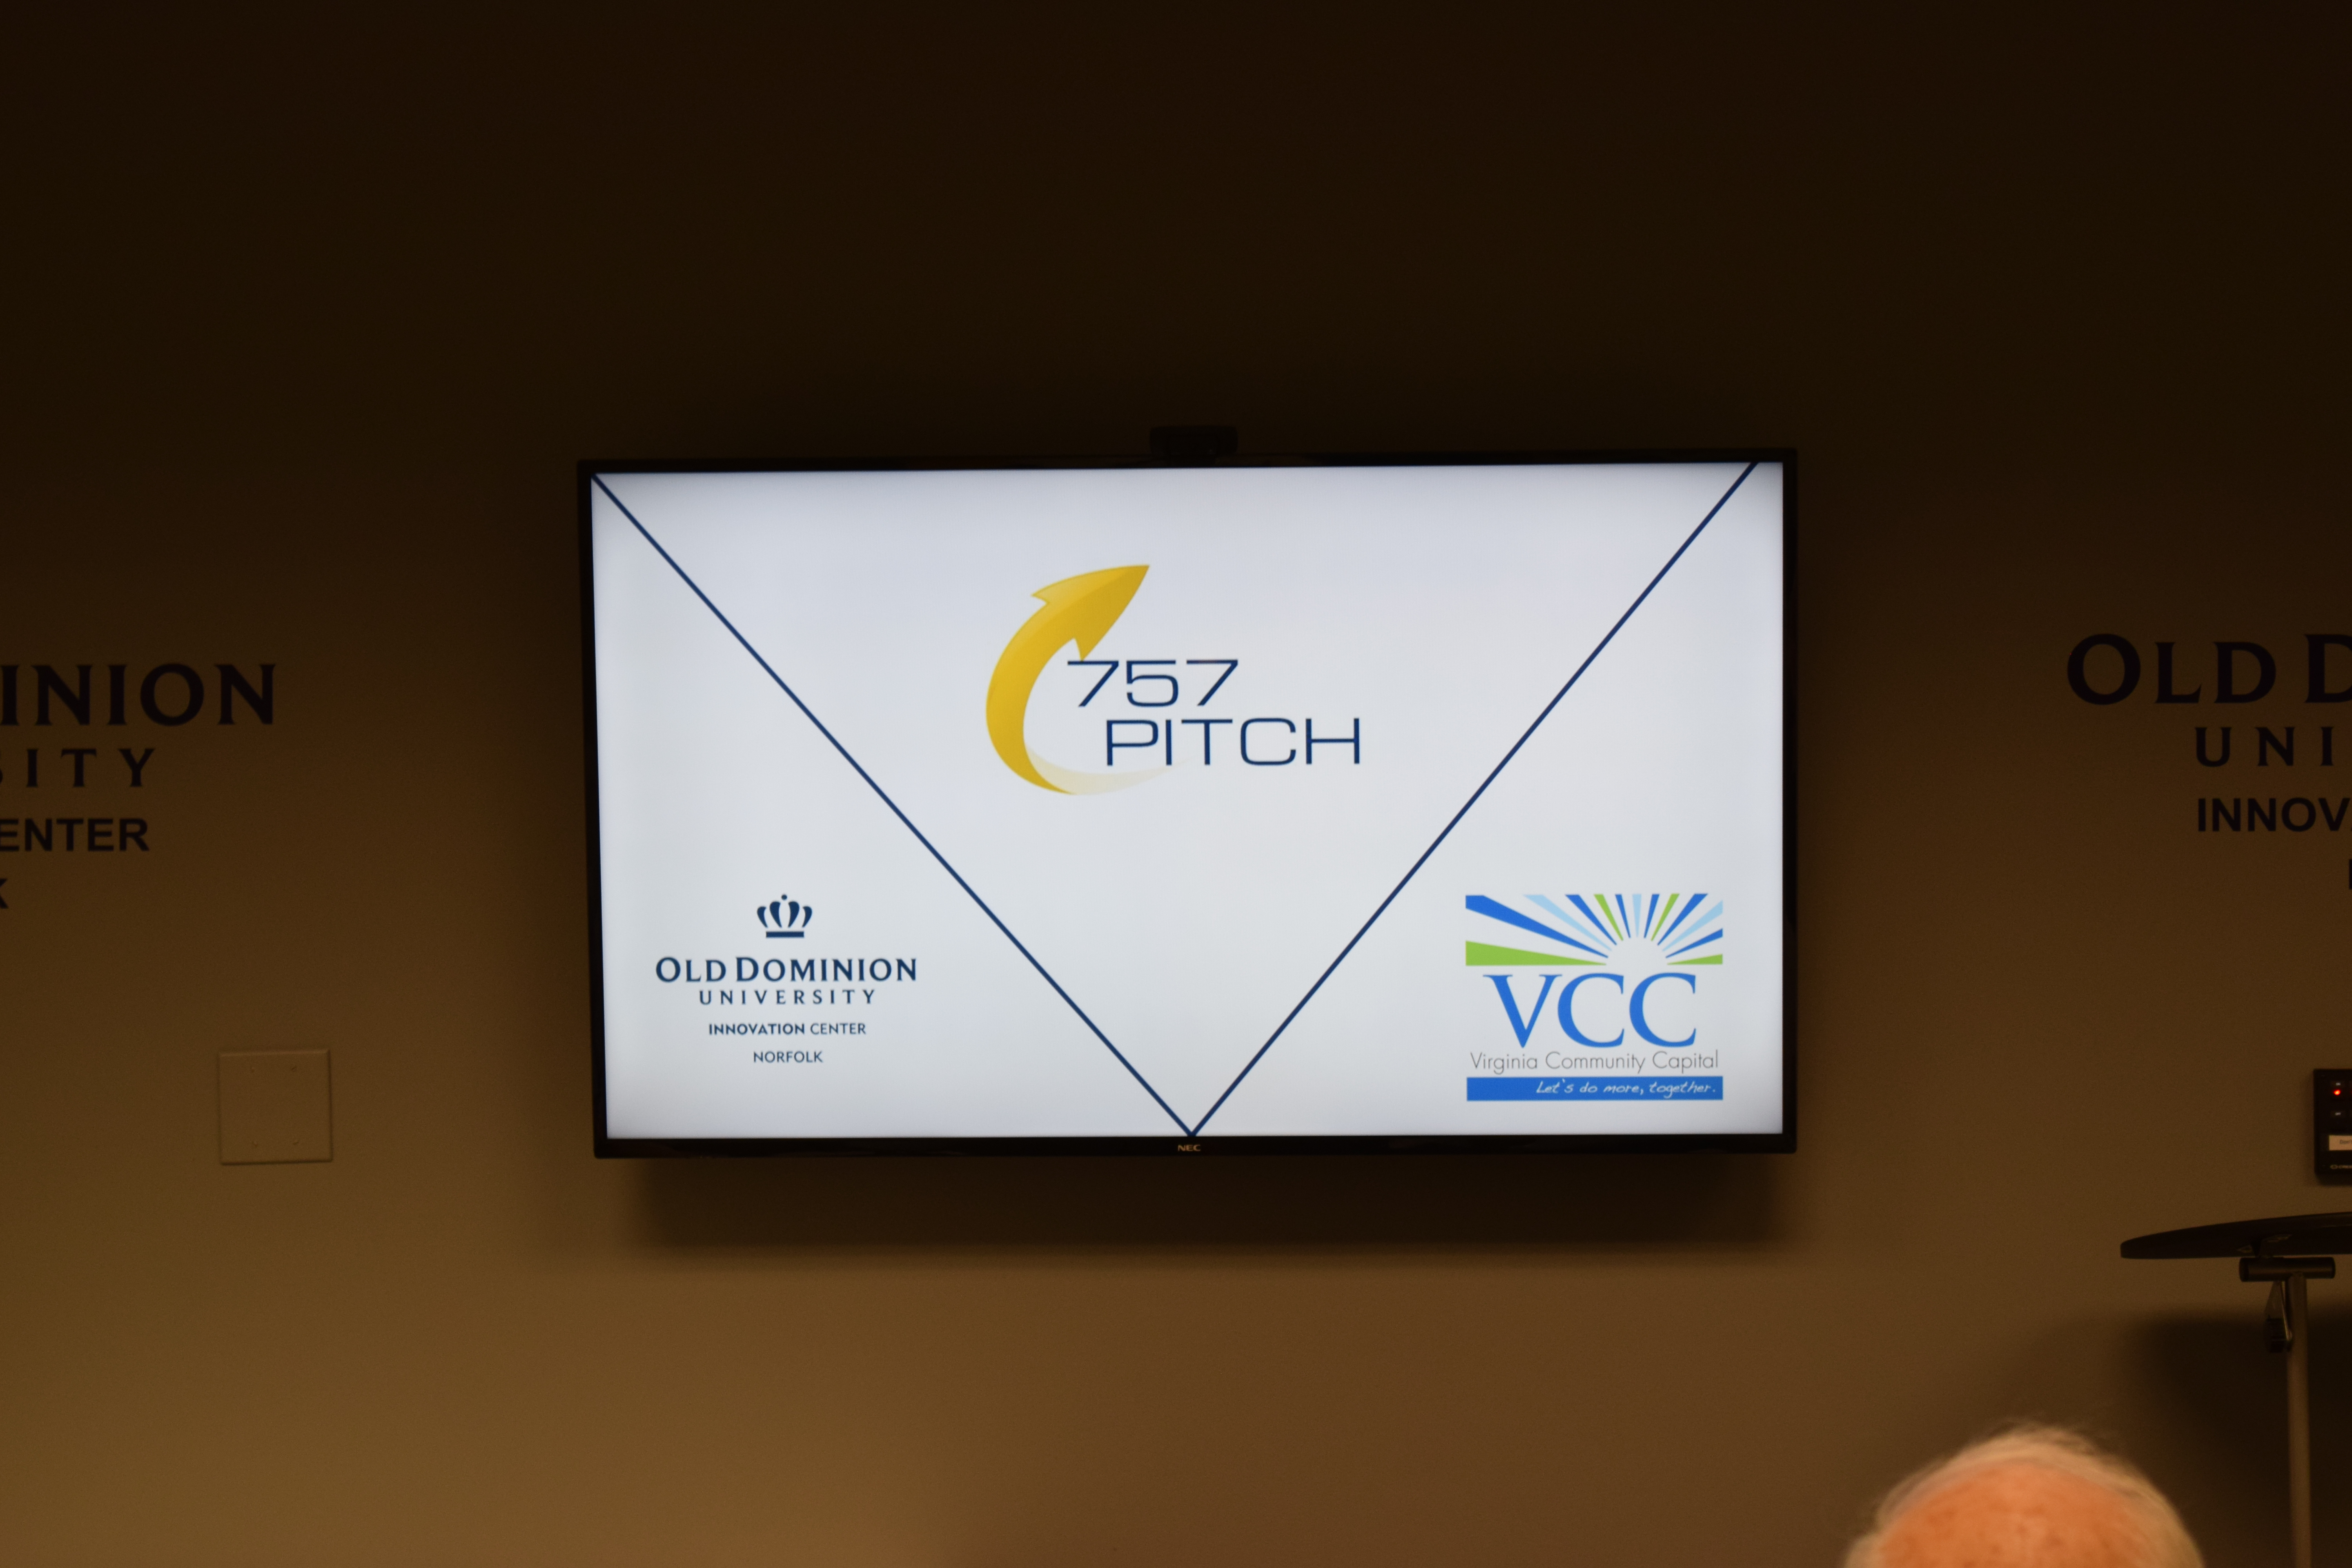 757Pitch sponsored by ODU CEI and Virginia Community Capital